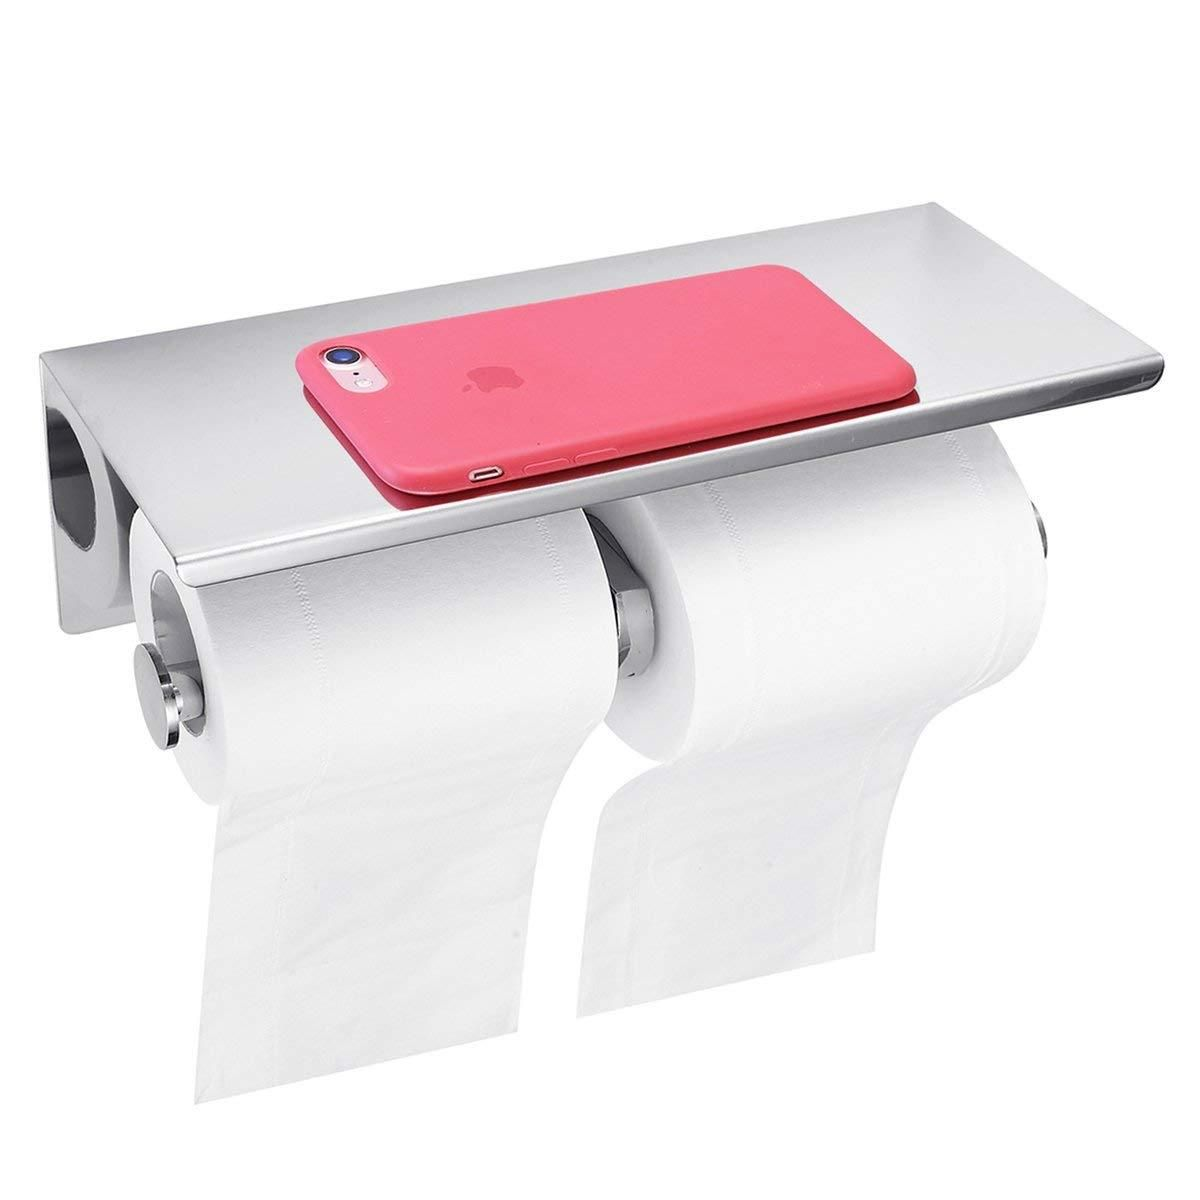 Extremerebate Gemitto Bathroom Double Tissue Roll Holder Sus304 Stainless Steel Toilet Paper Holder With Mobile Phone St Moveis Planejados Moveis Planejamento